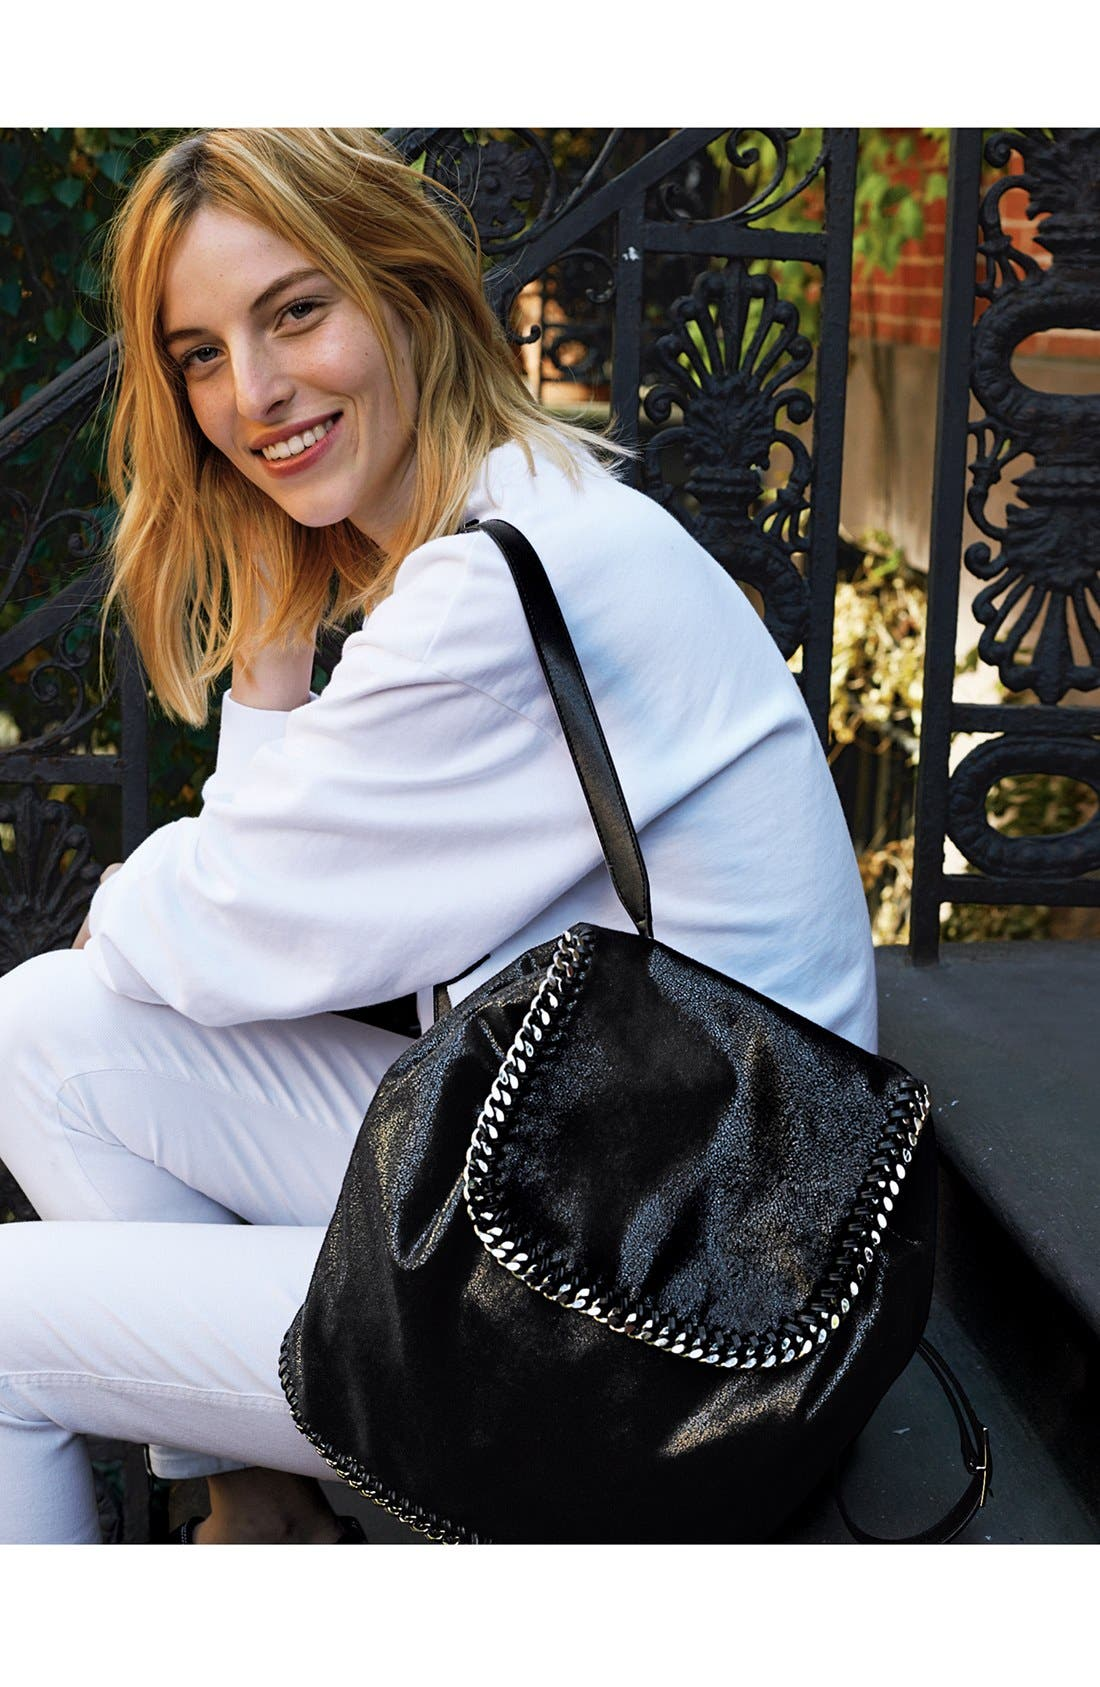 Main Image - Stella McCartney Faux Leather Backpack, Jeans & BLK Denim Sweatshirt